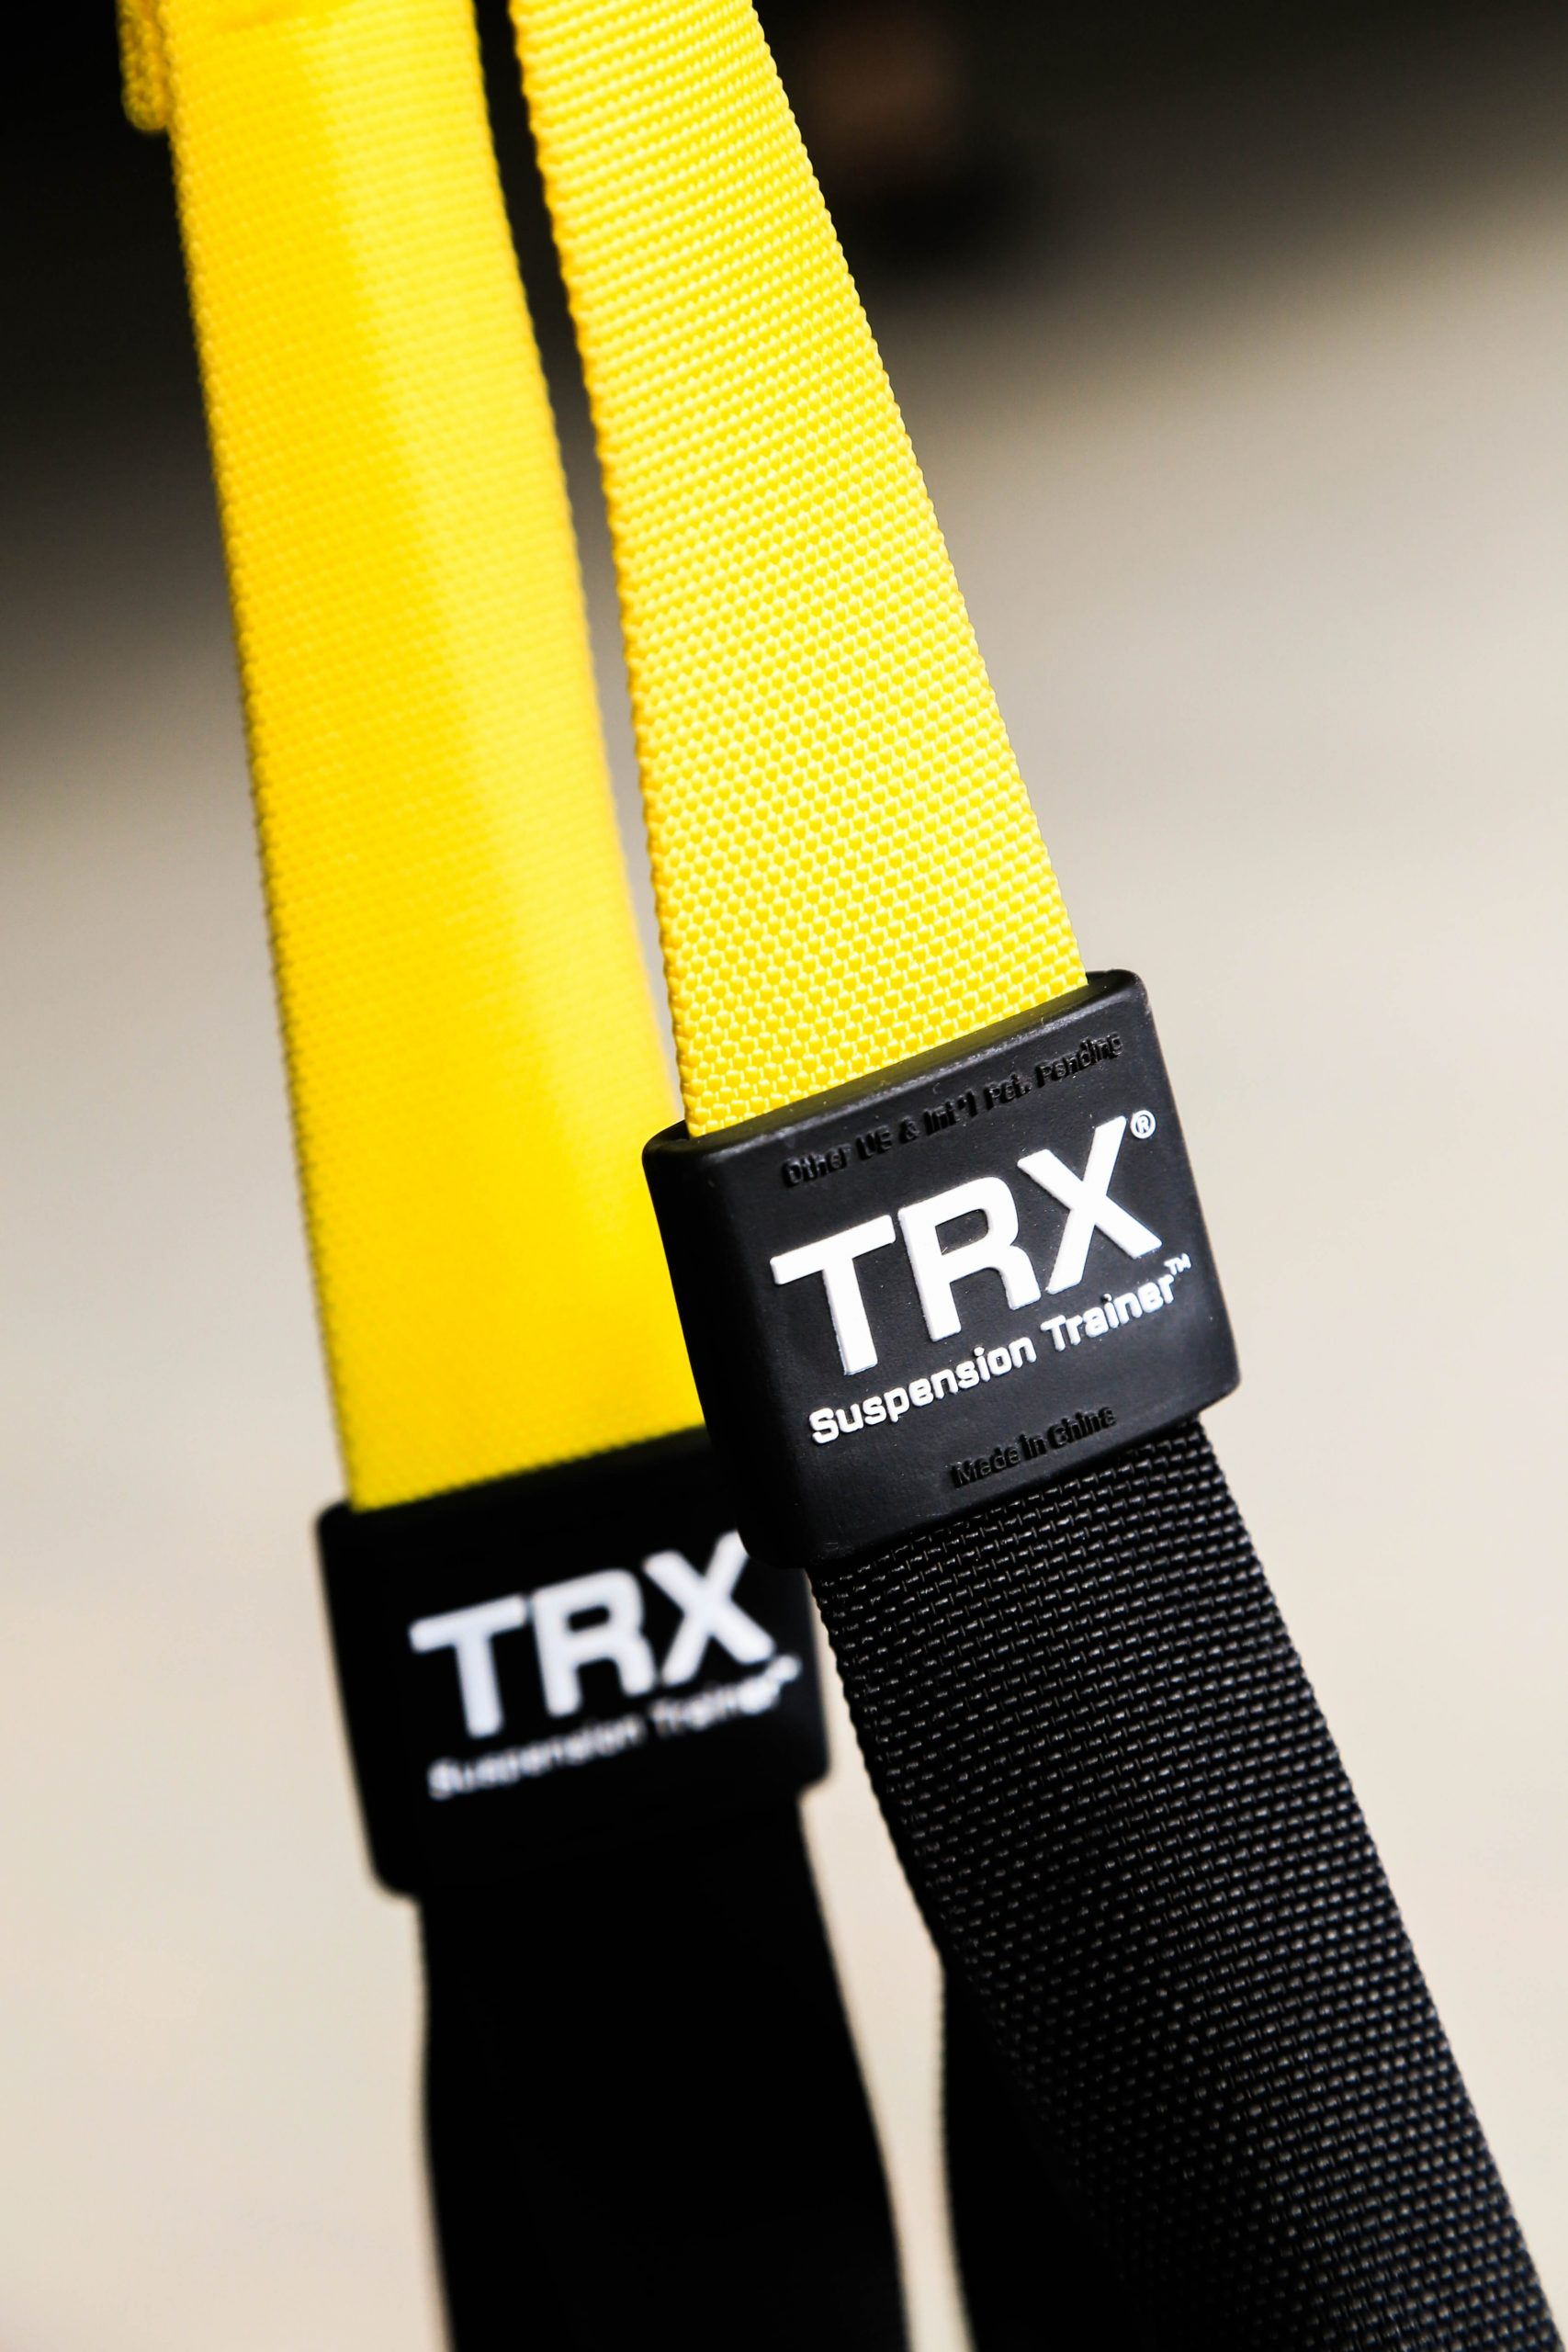 Personal Training and TRX at Kitsap Tennis and Athletic Center, KTAC